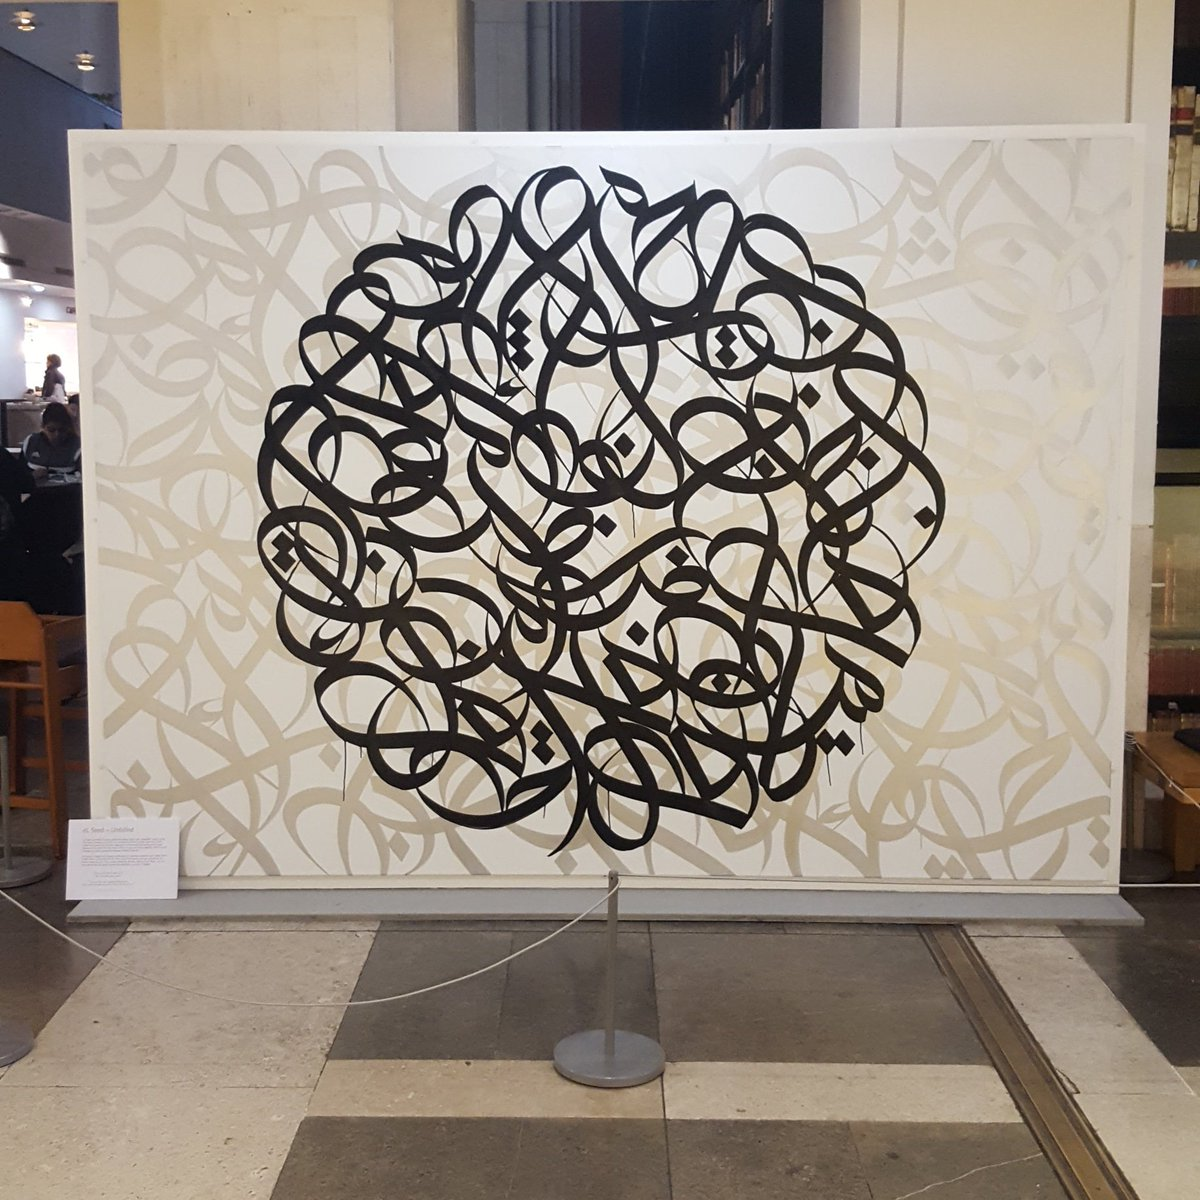 Finally got to see the mural painted by the talented French-Tunisian artist @elseed for the British Library exhibition Writing: Making Your Mark. eL Seed was inspired by a quote on the grave of Lebanese-American poet Kahlil Gibran. #MakingYourMark <br>http://pic.twitter.com/U2XMYvLkkC